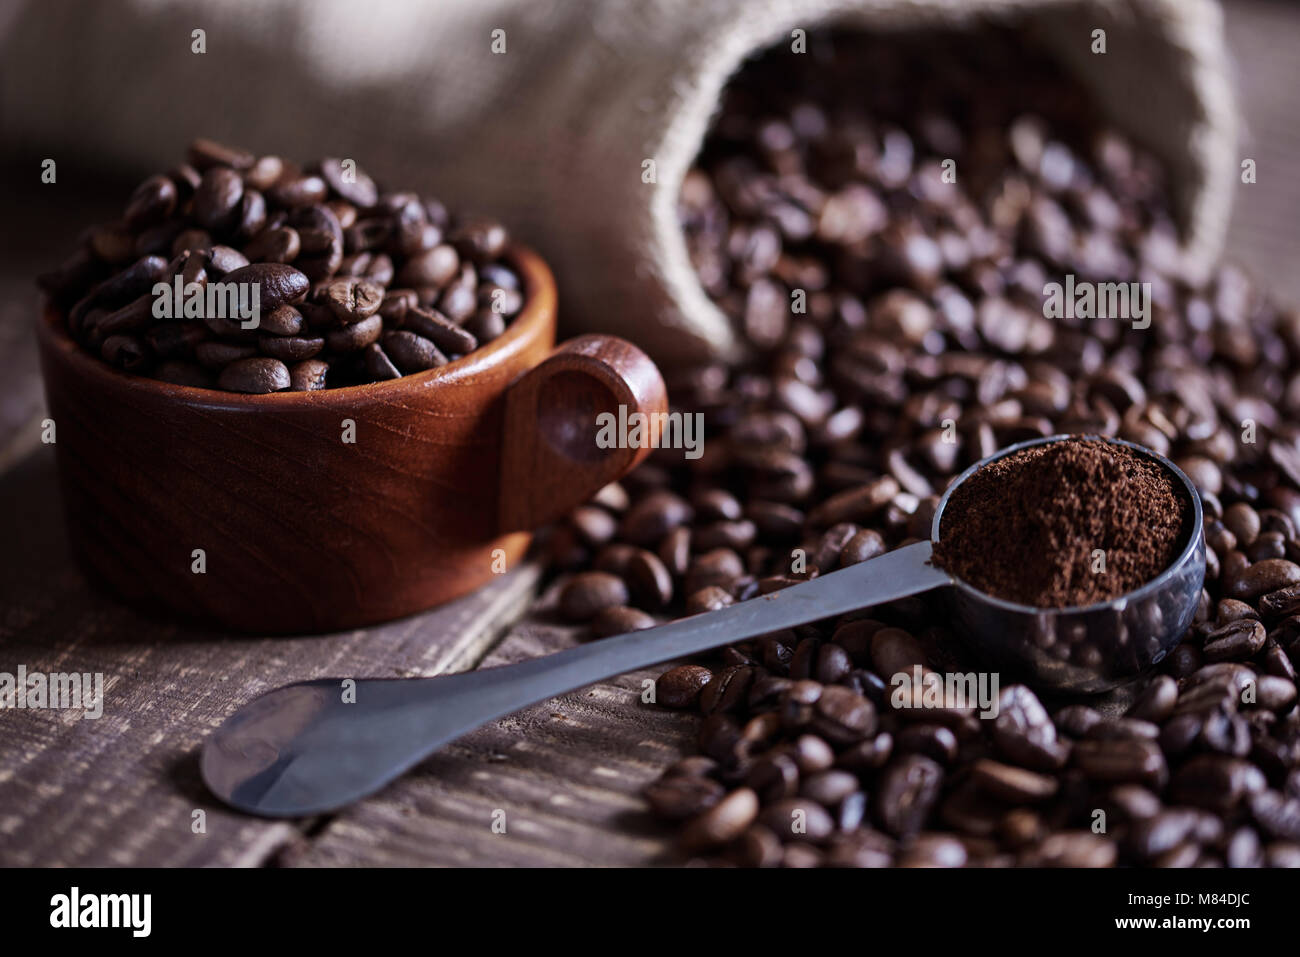 Beans of coffee and jute bag - Stock Image